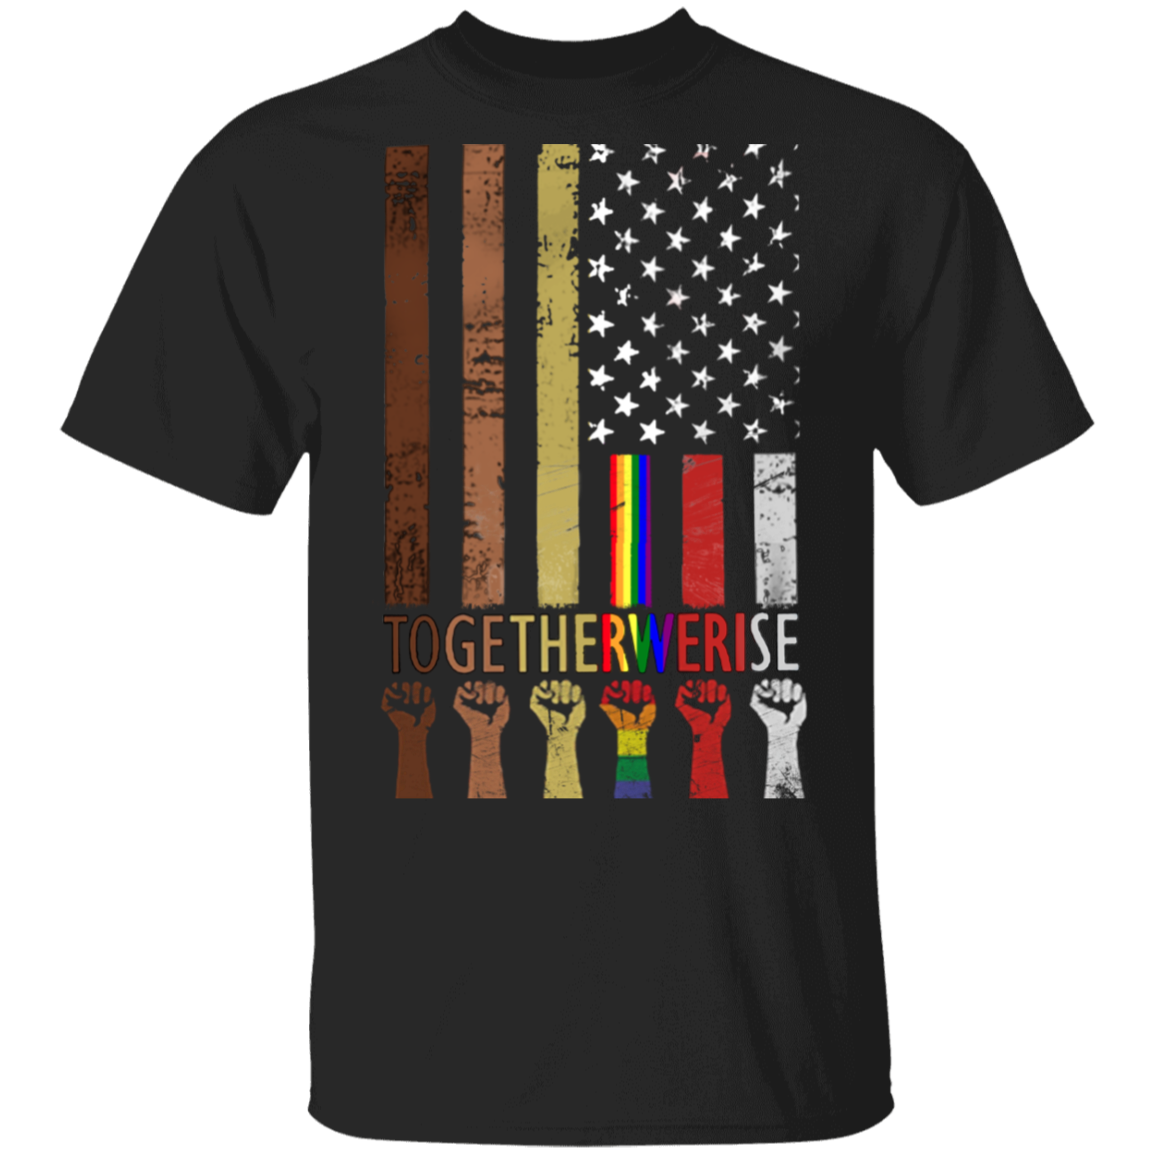 American Flag Together We Rise T-Shirt Juneteenth Be Kind Asl Shirt 4th Of July Shirts